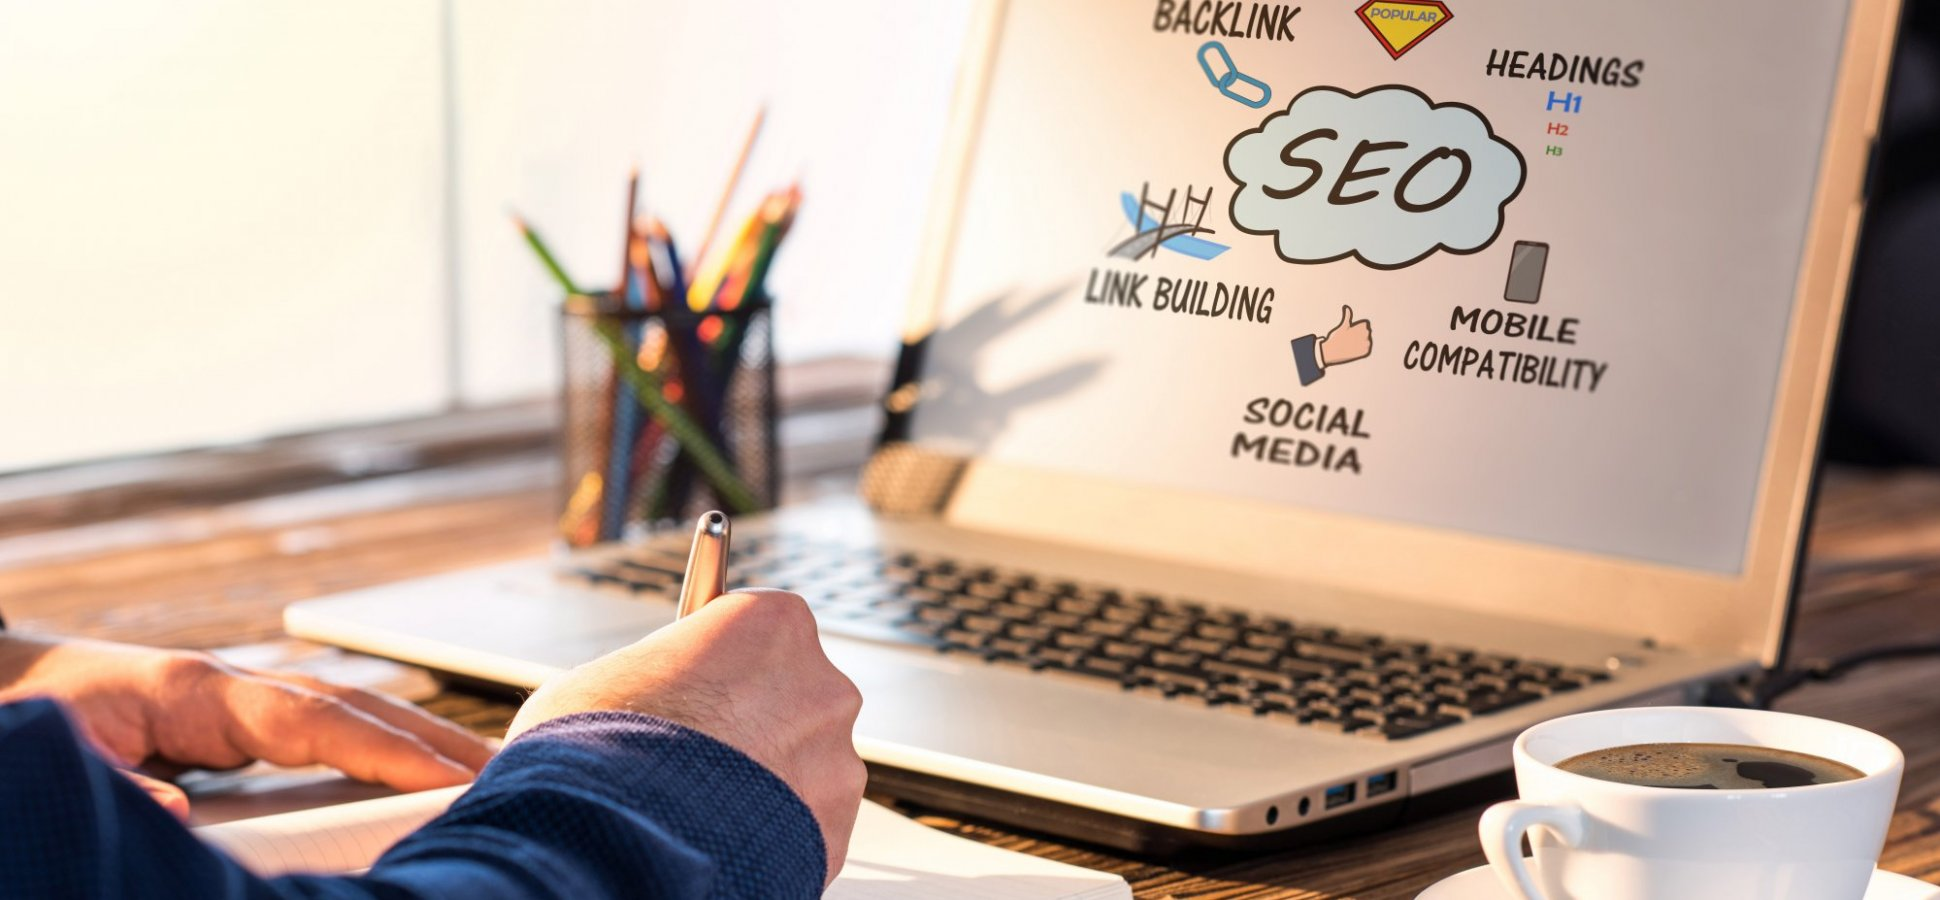 New To SEO? How To Boost Your Rankings With These 4 Easy Tips